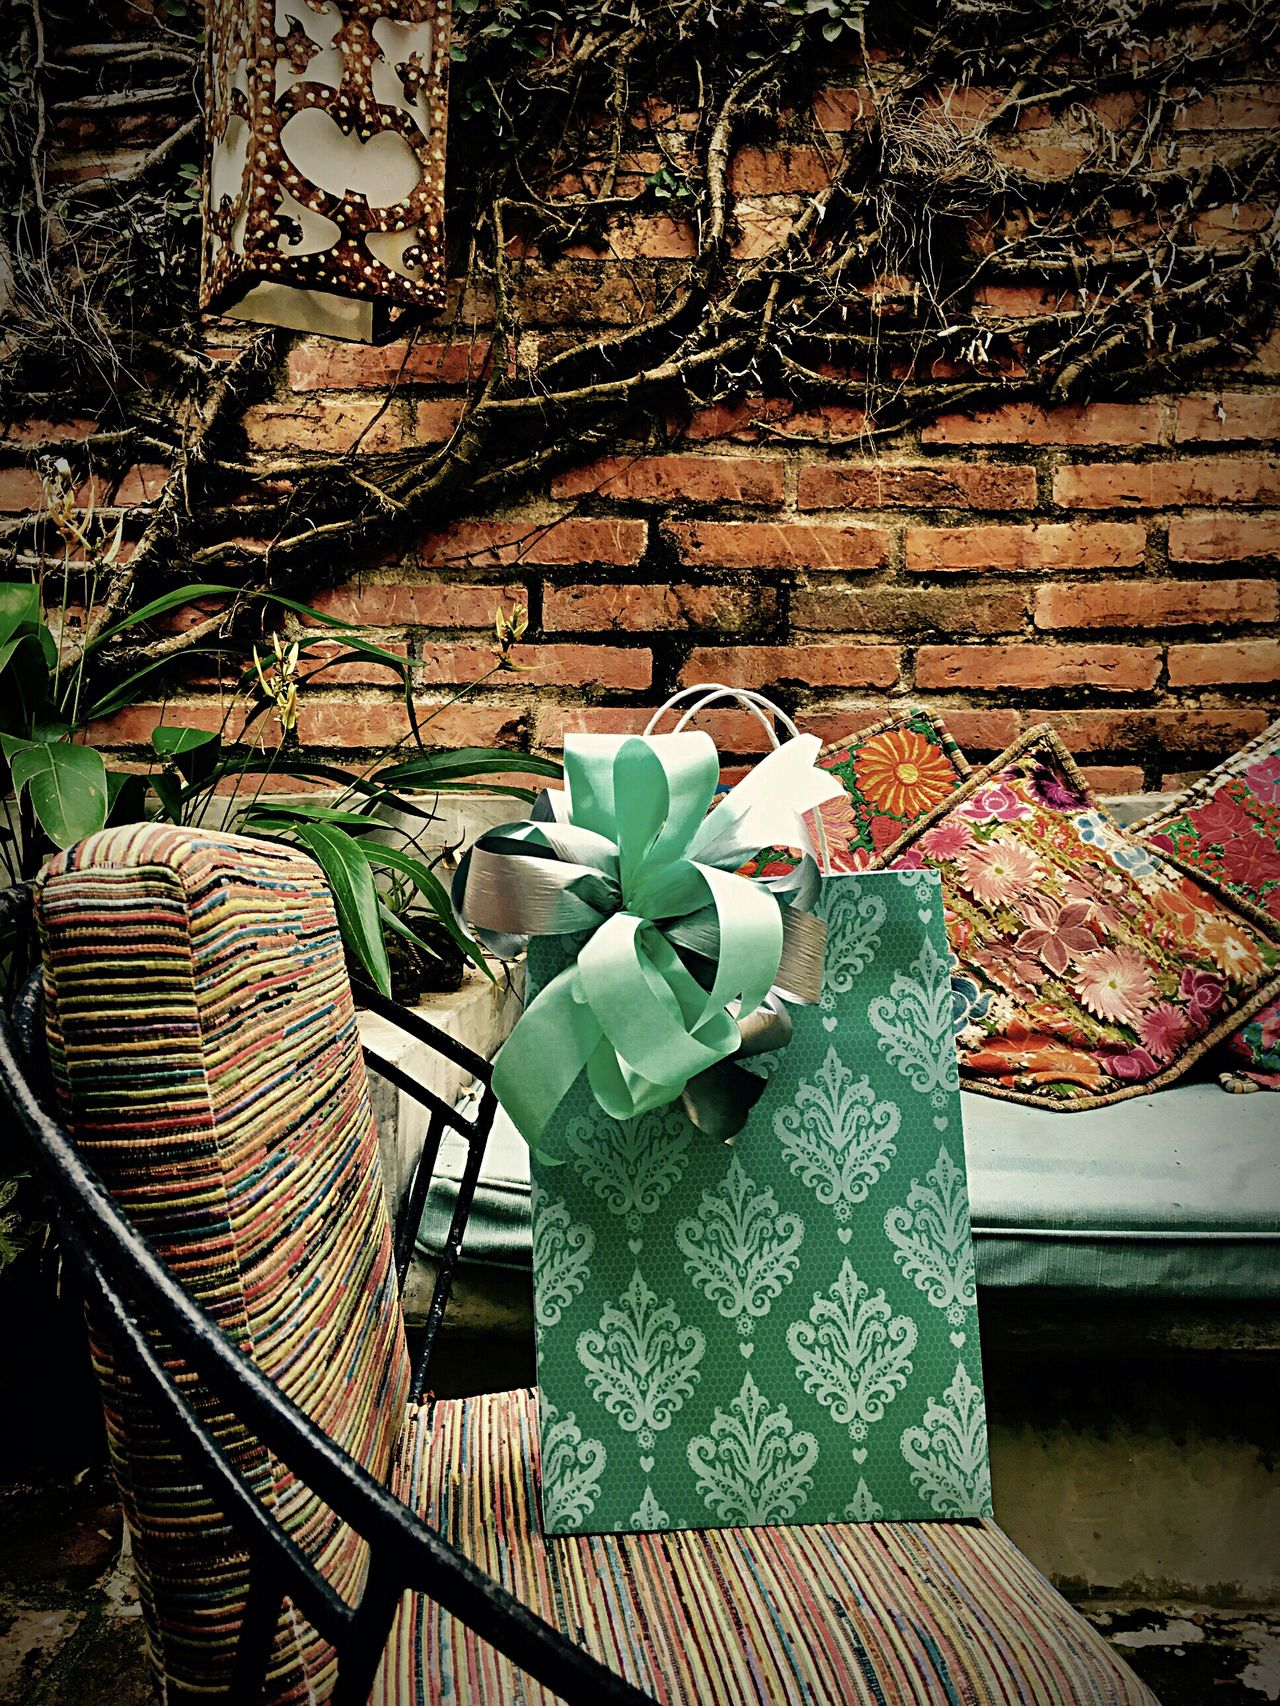 Surprise gift Chair Table Green Color No People Plant Branch Indoors  Nature Day Gift Bags Wrapping Presents Interior Design Indoor Courtyard Peace And Quiet Mint Green Big Bow